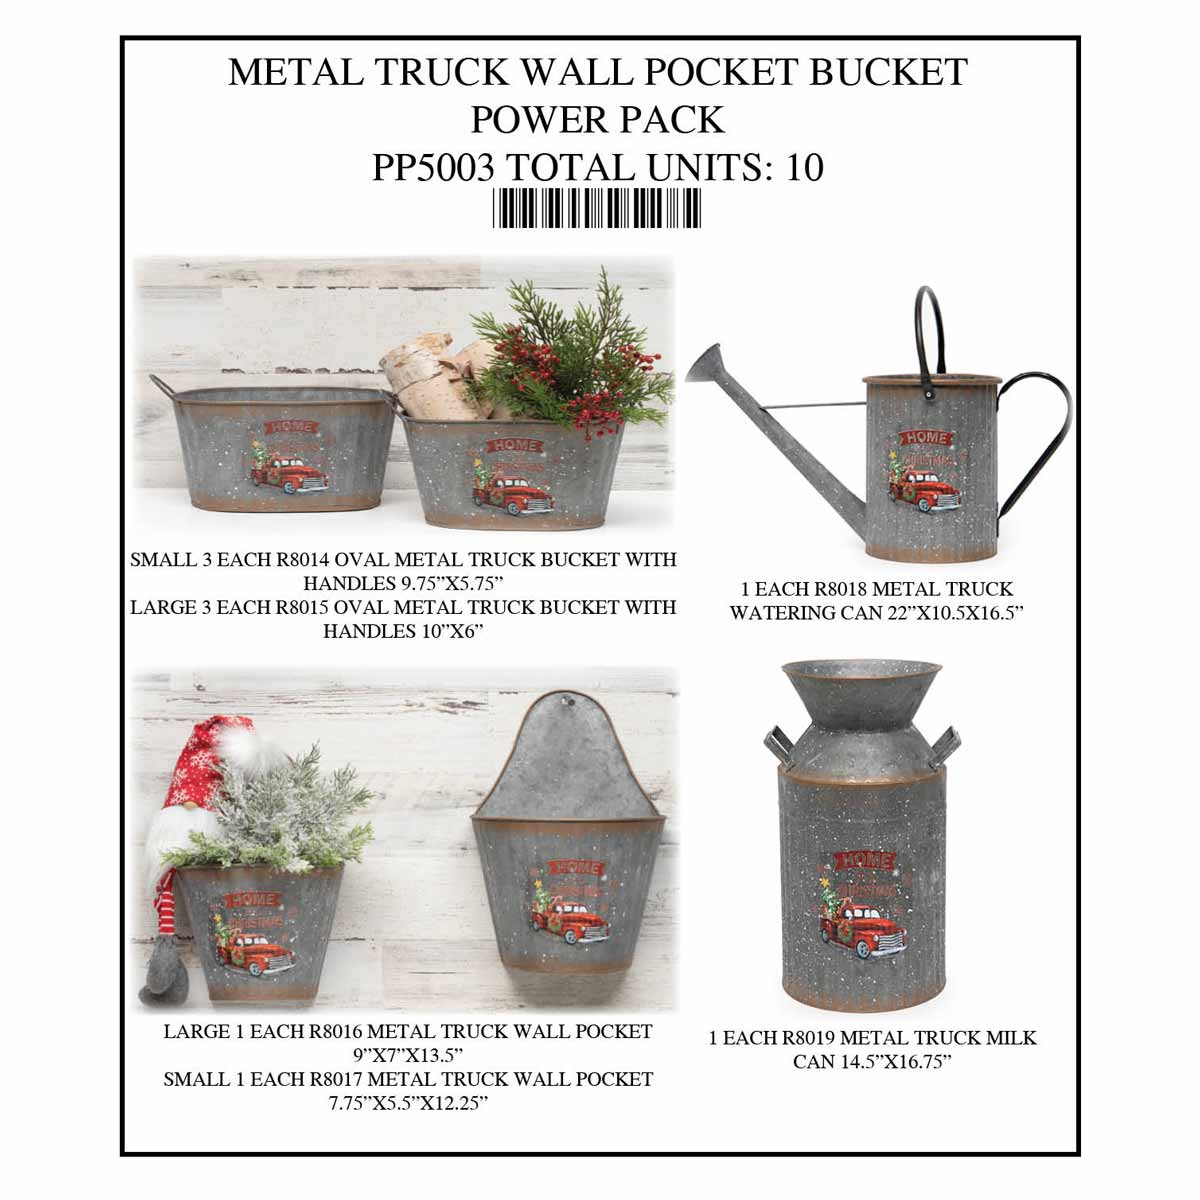 BUCKET WALL POCKET TRUCK POWER PACK 10 UNITS